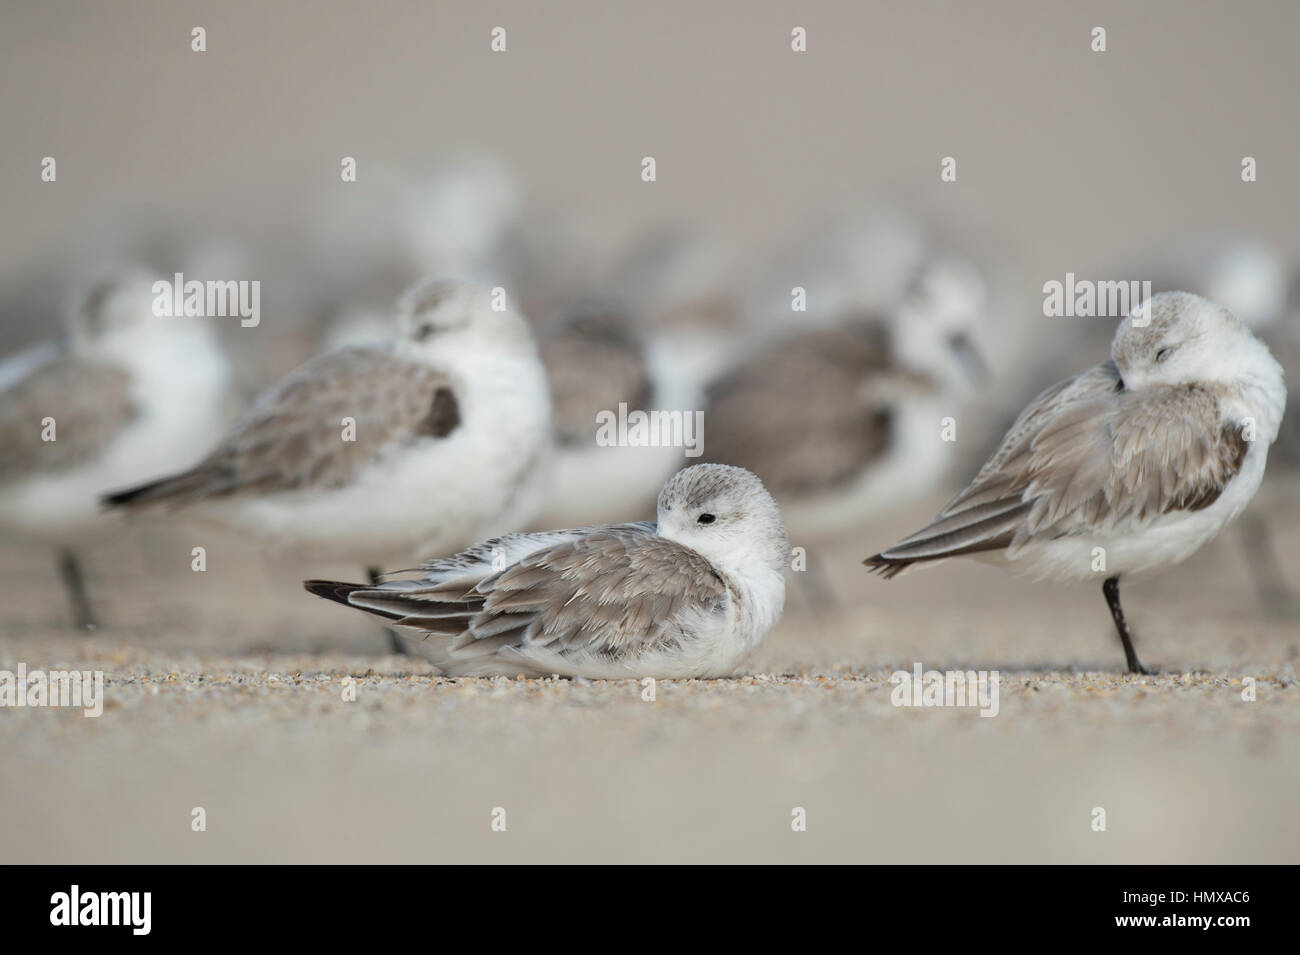 A flock of Sanderlings sleep on the beach with one bird sitting down and the rest standing around it. - Stock Image